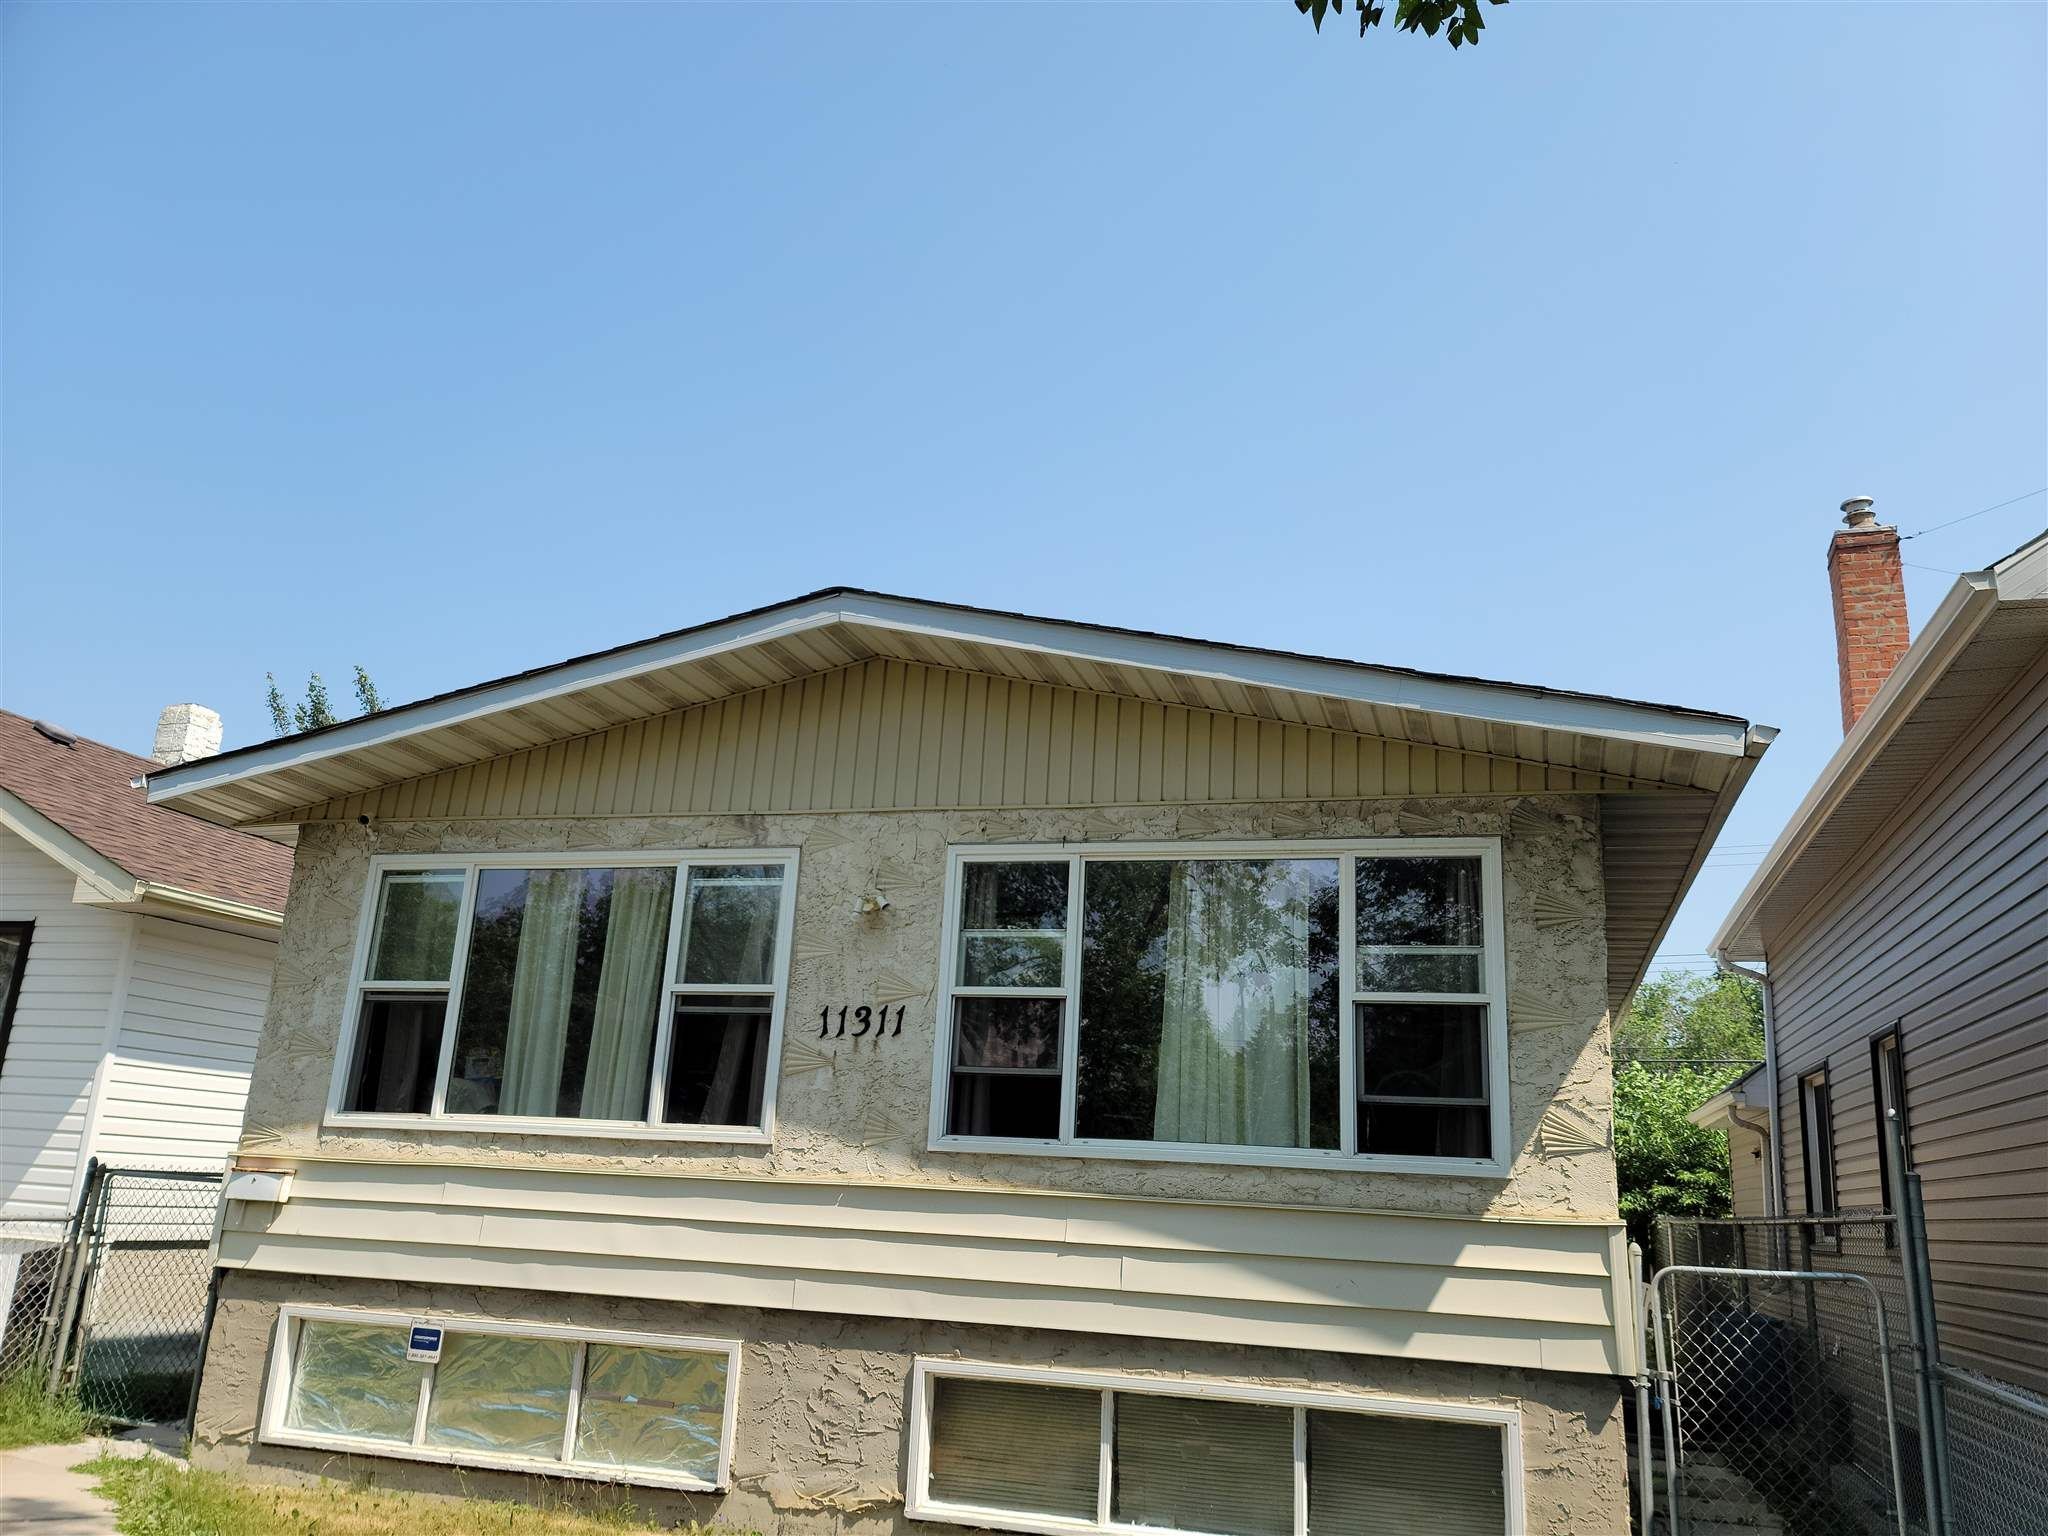 Main Photo: 11311 97 Street in Edmonton: Zone 05 Attached Home for sale : MLS®# E4254619